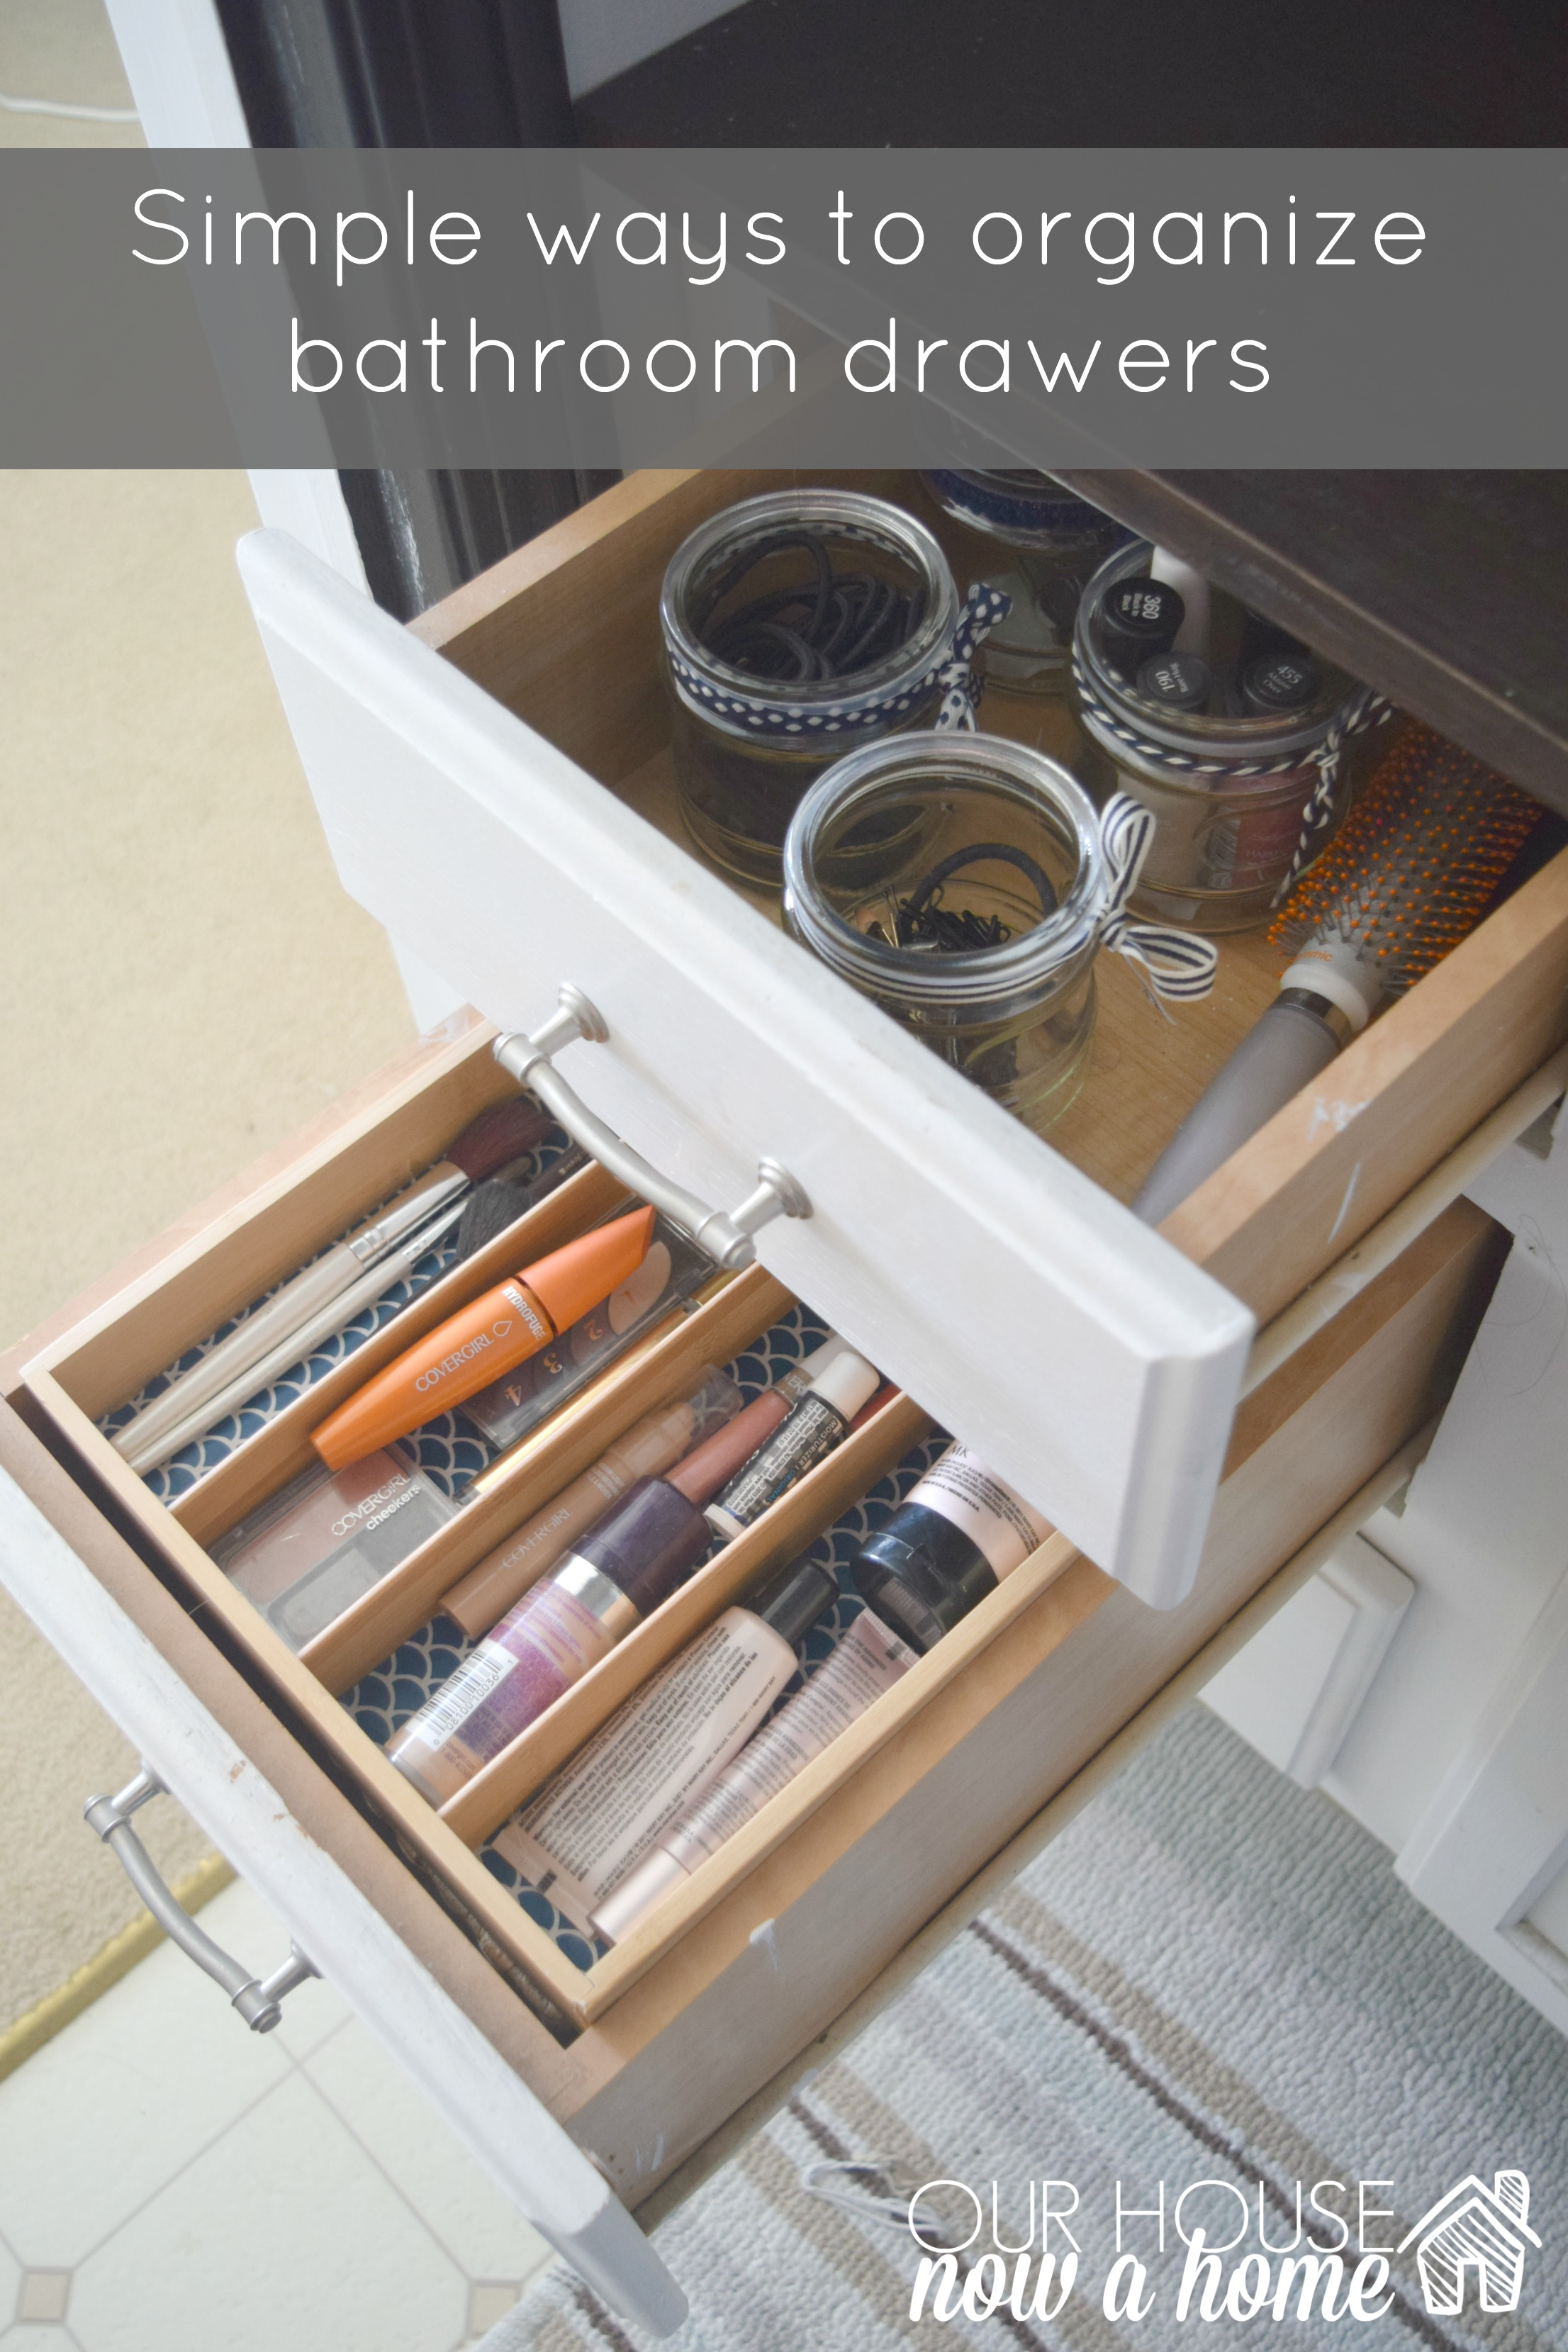 Simple ways to organize bathroom drawers • Our House Now a Home